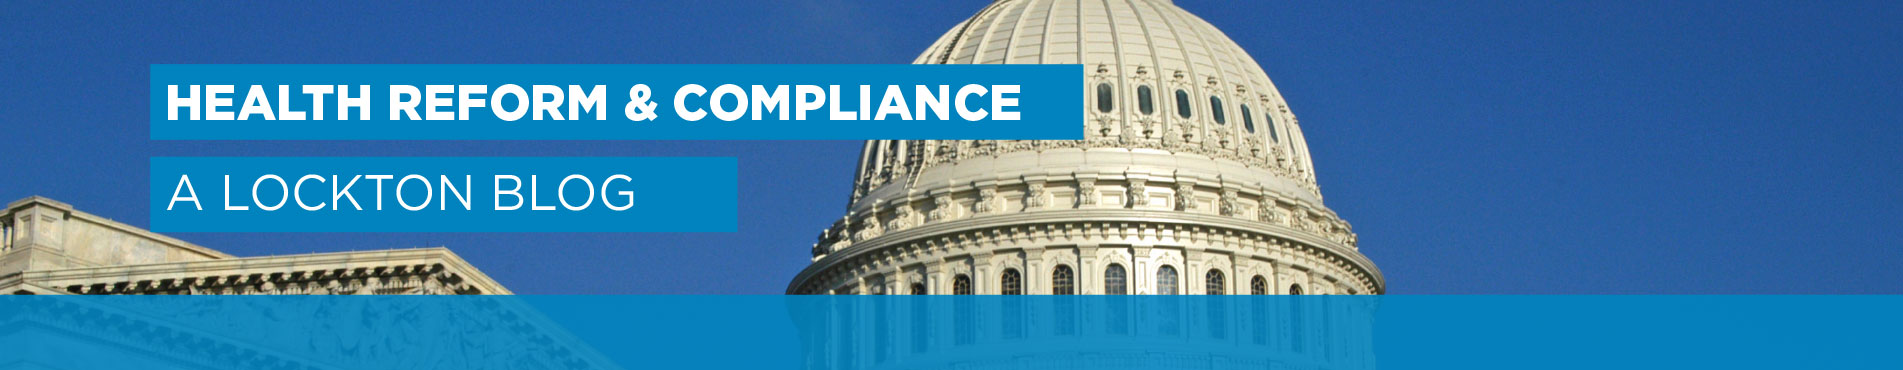 Lockton Health Reform and Compliance